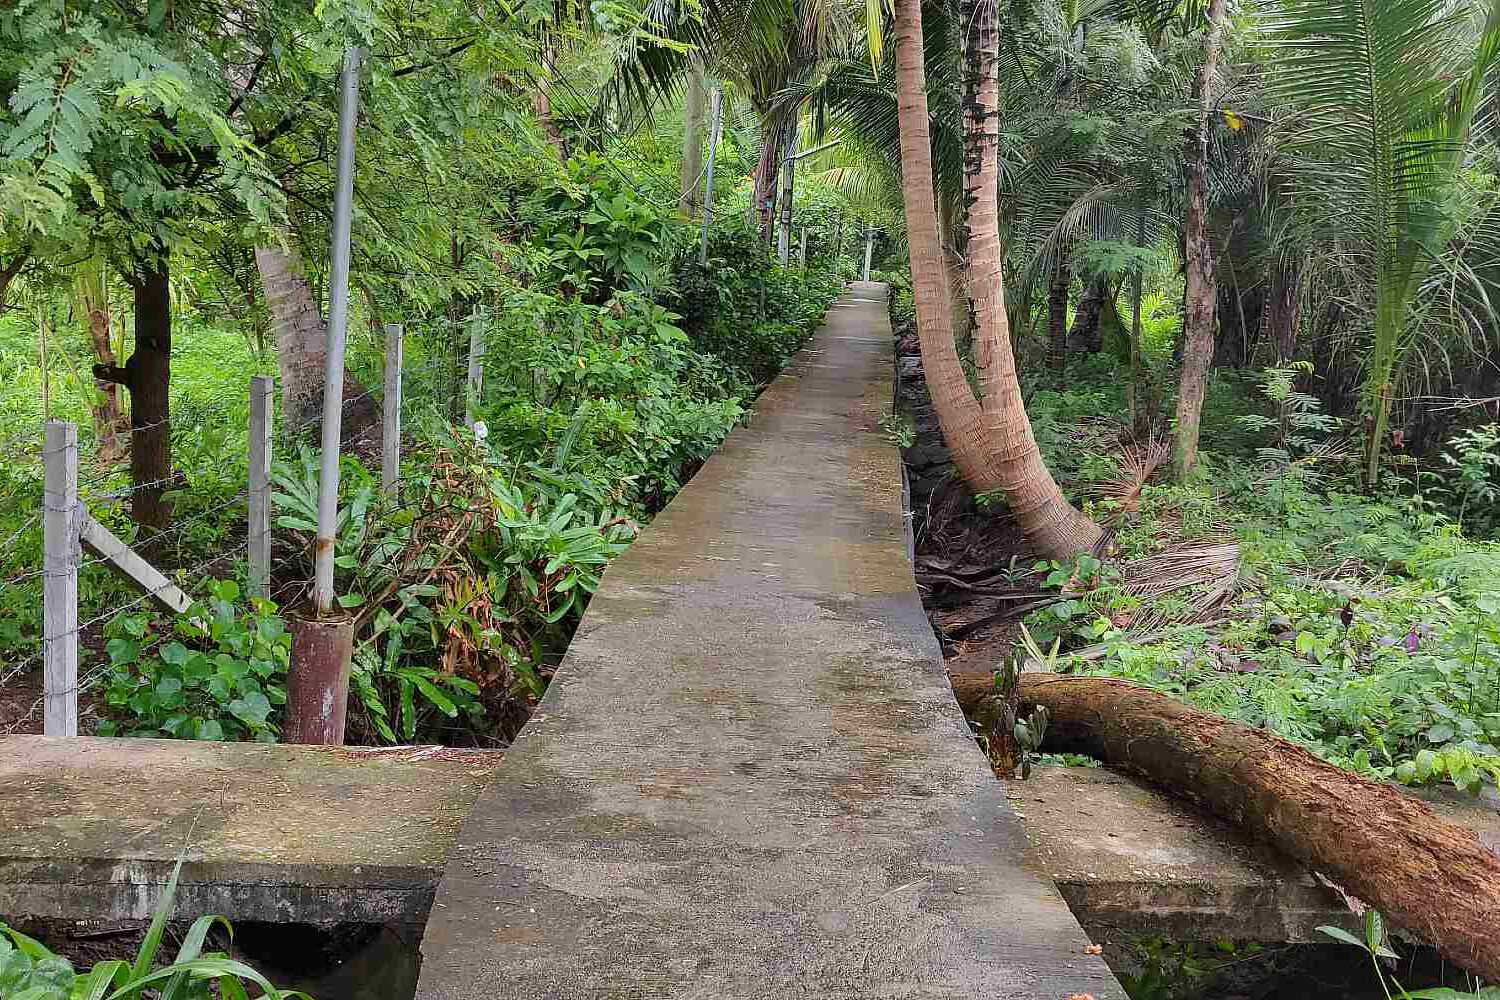 Narrow paths with corners between the greenery